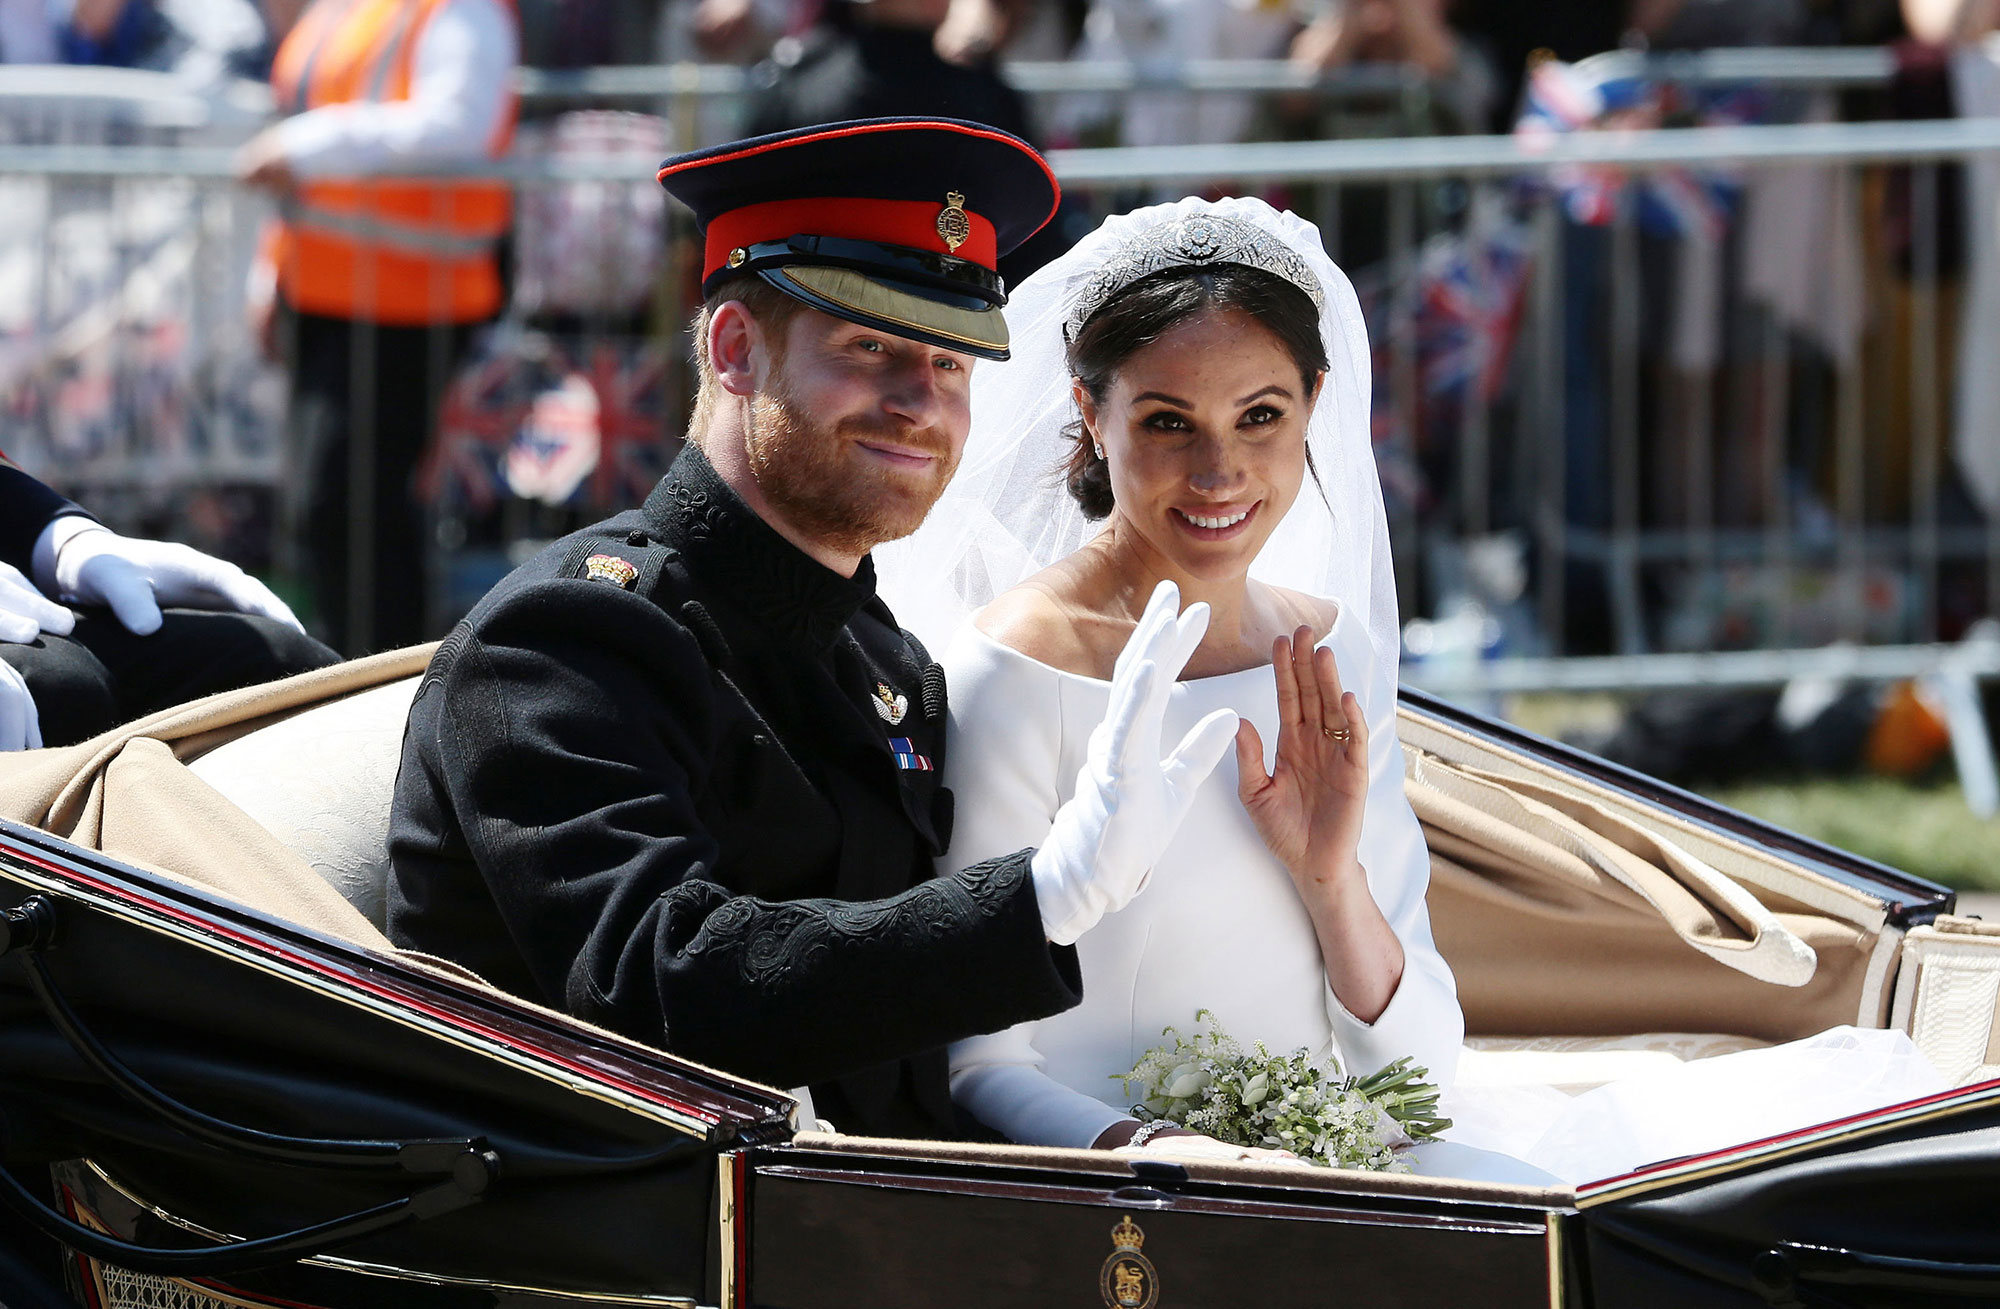 Celebrity Couples Who Got Engaged and Married in the Same Year - WINDSOR, ENGLAND – MAY 19: (EDITORS NOTE: Retransmission of #960087582 with alternate crop.) Prince Harry, Duke of Sussex and Meghan, Duchess of Sussex wave from the Ascot Landau Carriage during their carriage procession on Castle Hill outside Windsor Castle in Windsor, on May 19, 2018 after their wedding ceremony. (Photo by Aaron Chown – WPA […]